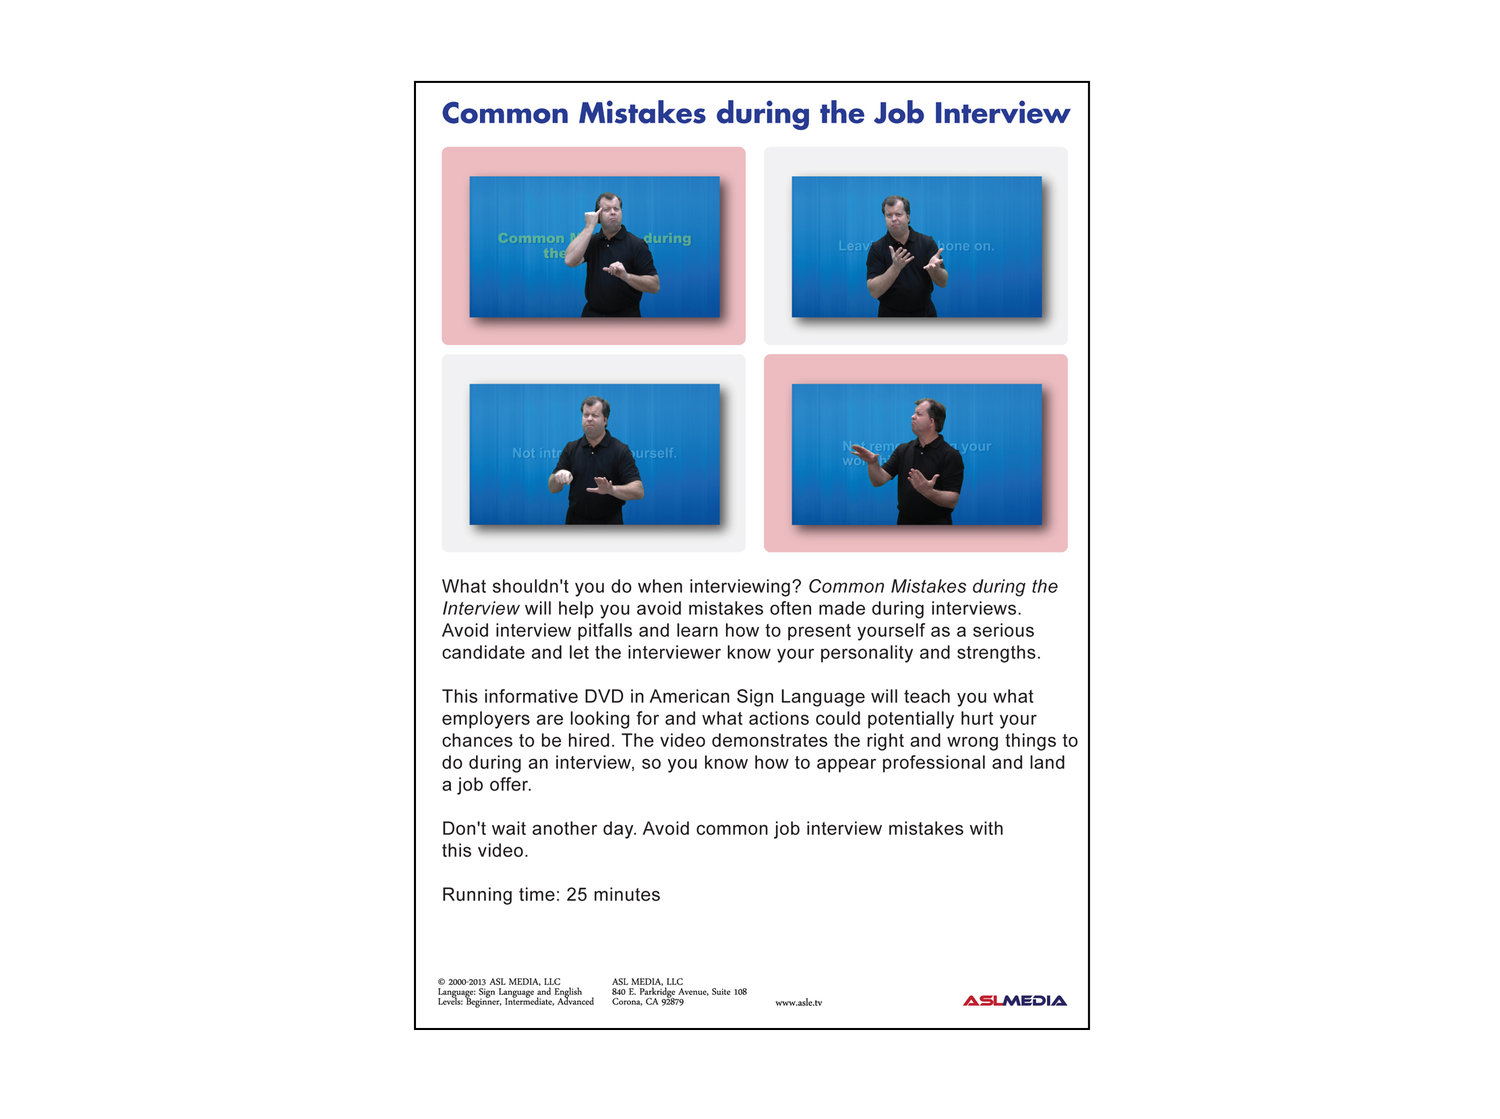 job success common mistakes during the interview dvd asl media job success common mistakes during the interview dvd